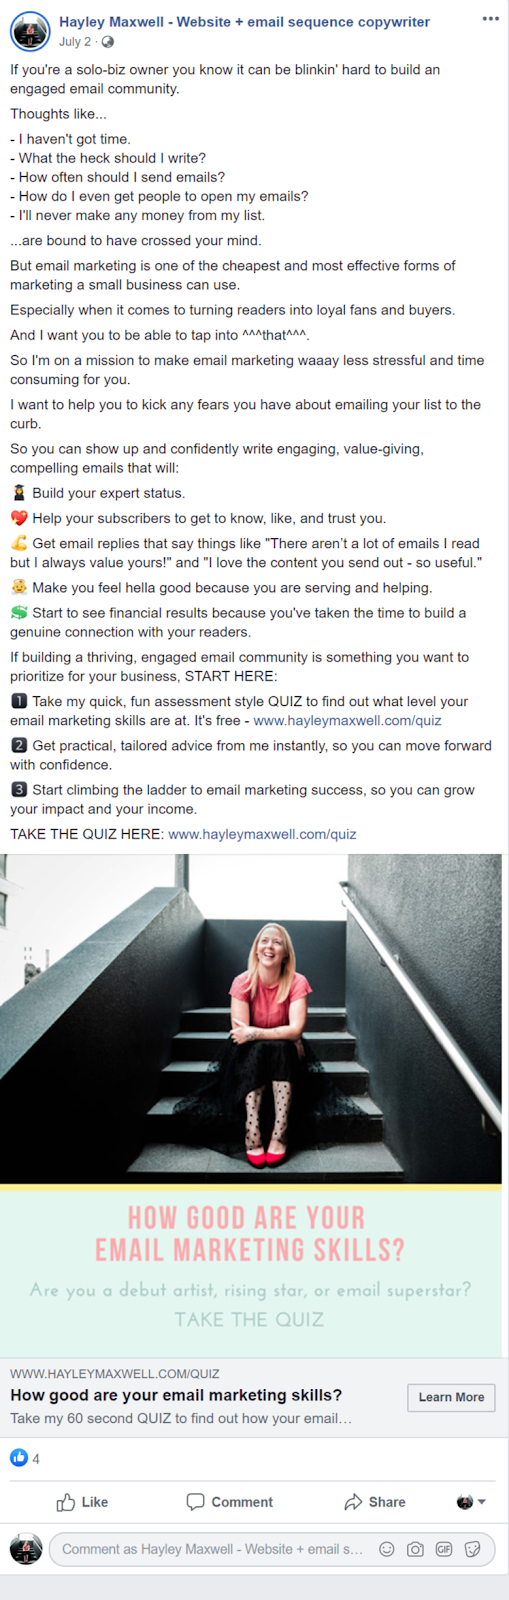 quiz marketing funnel ad example from Hayley Maxwell